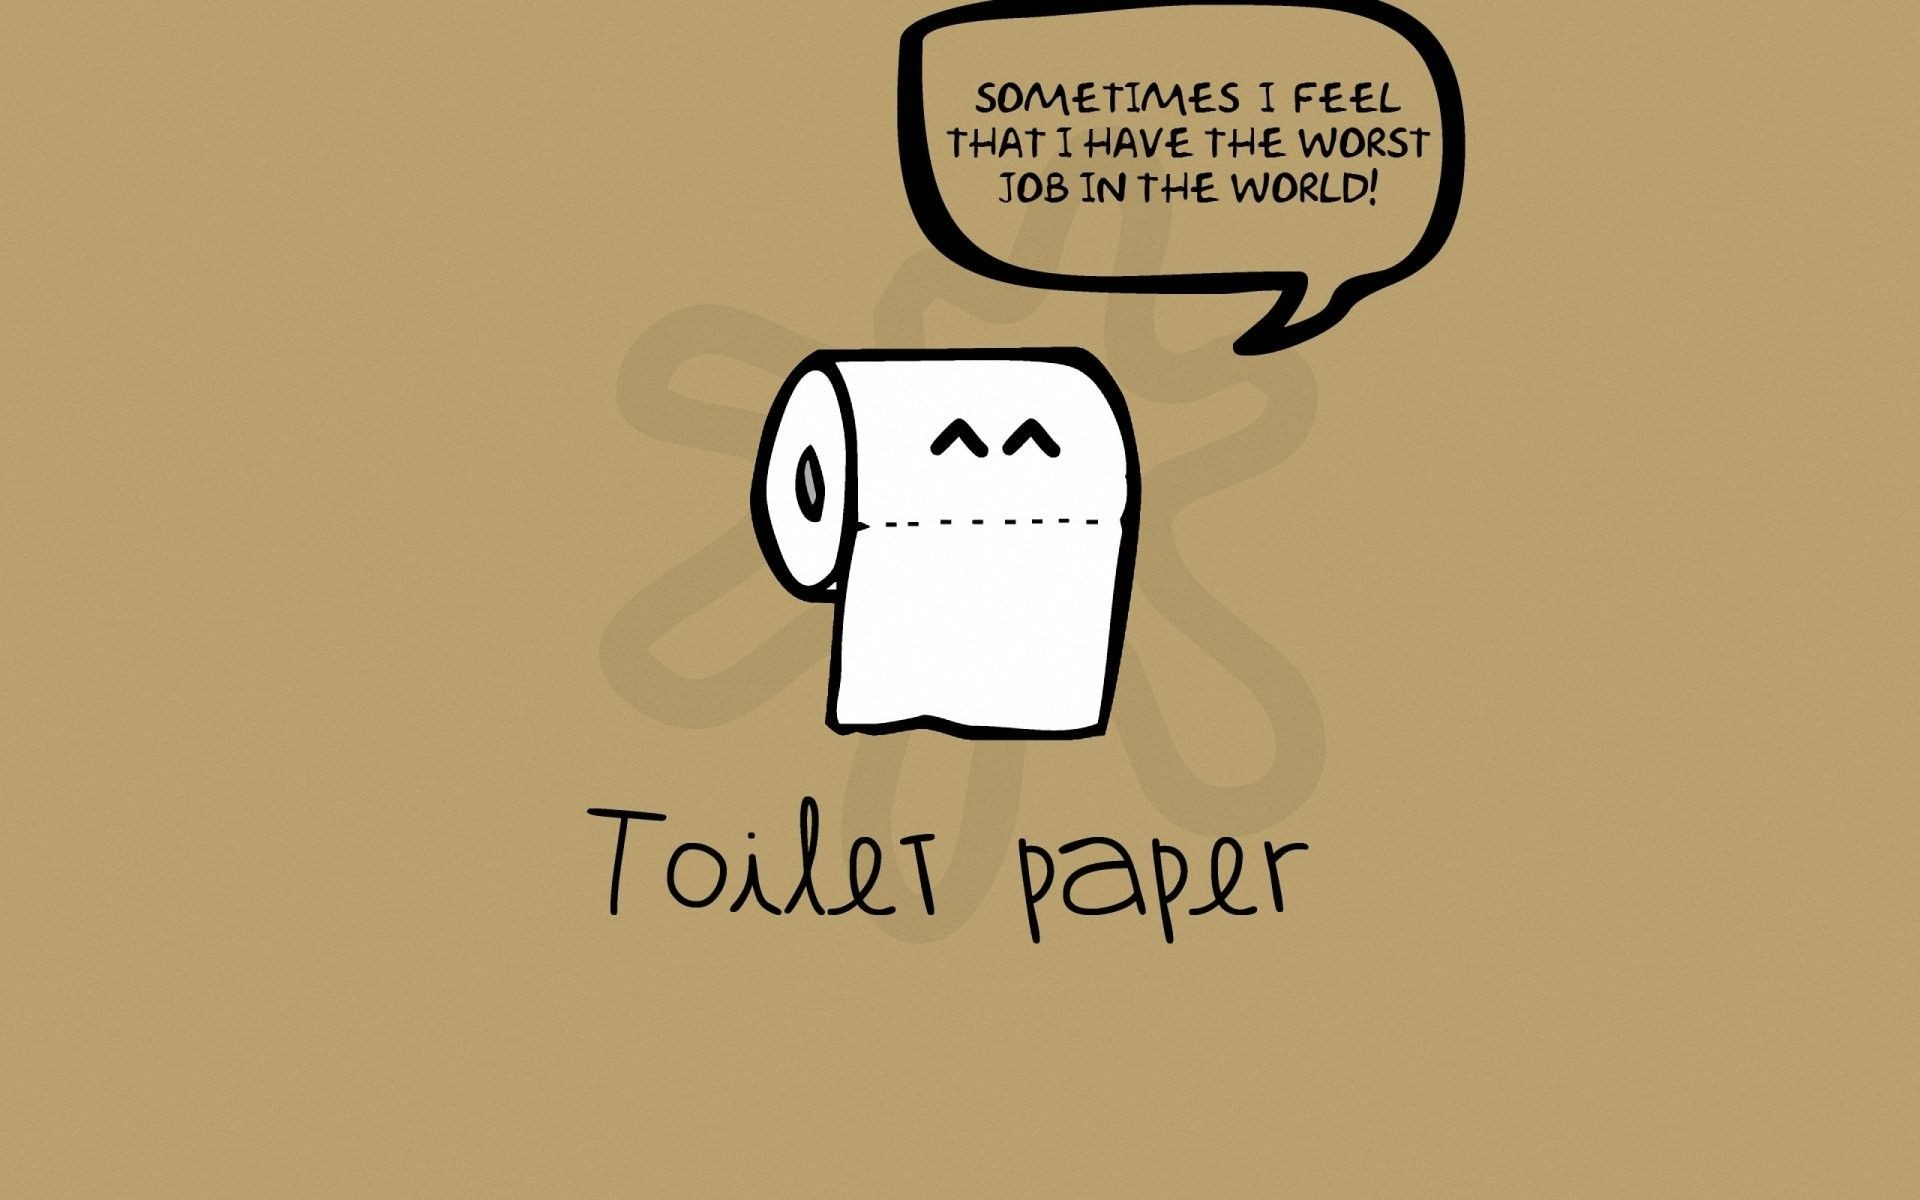 Wallpaper funny toilet paper reddit sayings image pic wpd004477 wallpaper funny toilet paper reddit sayings image pic wpd004477 by billion photos voltagebd Image collections